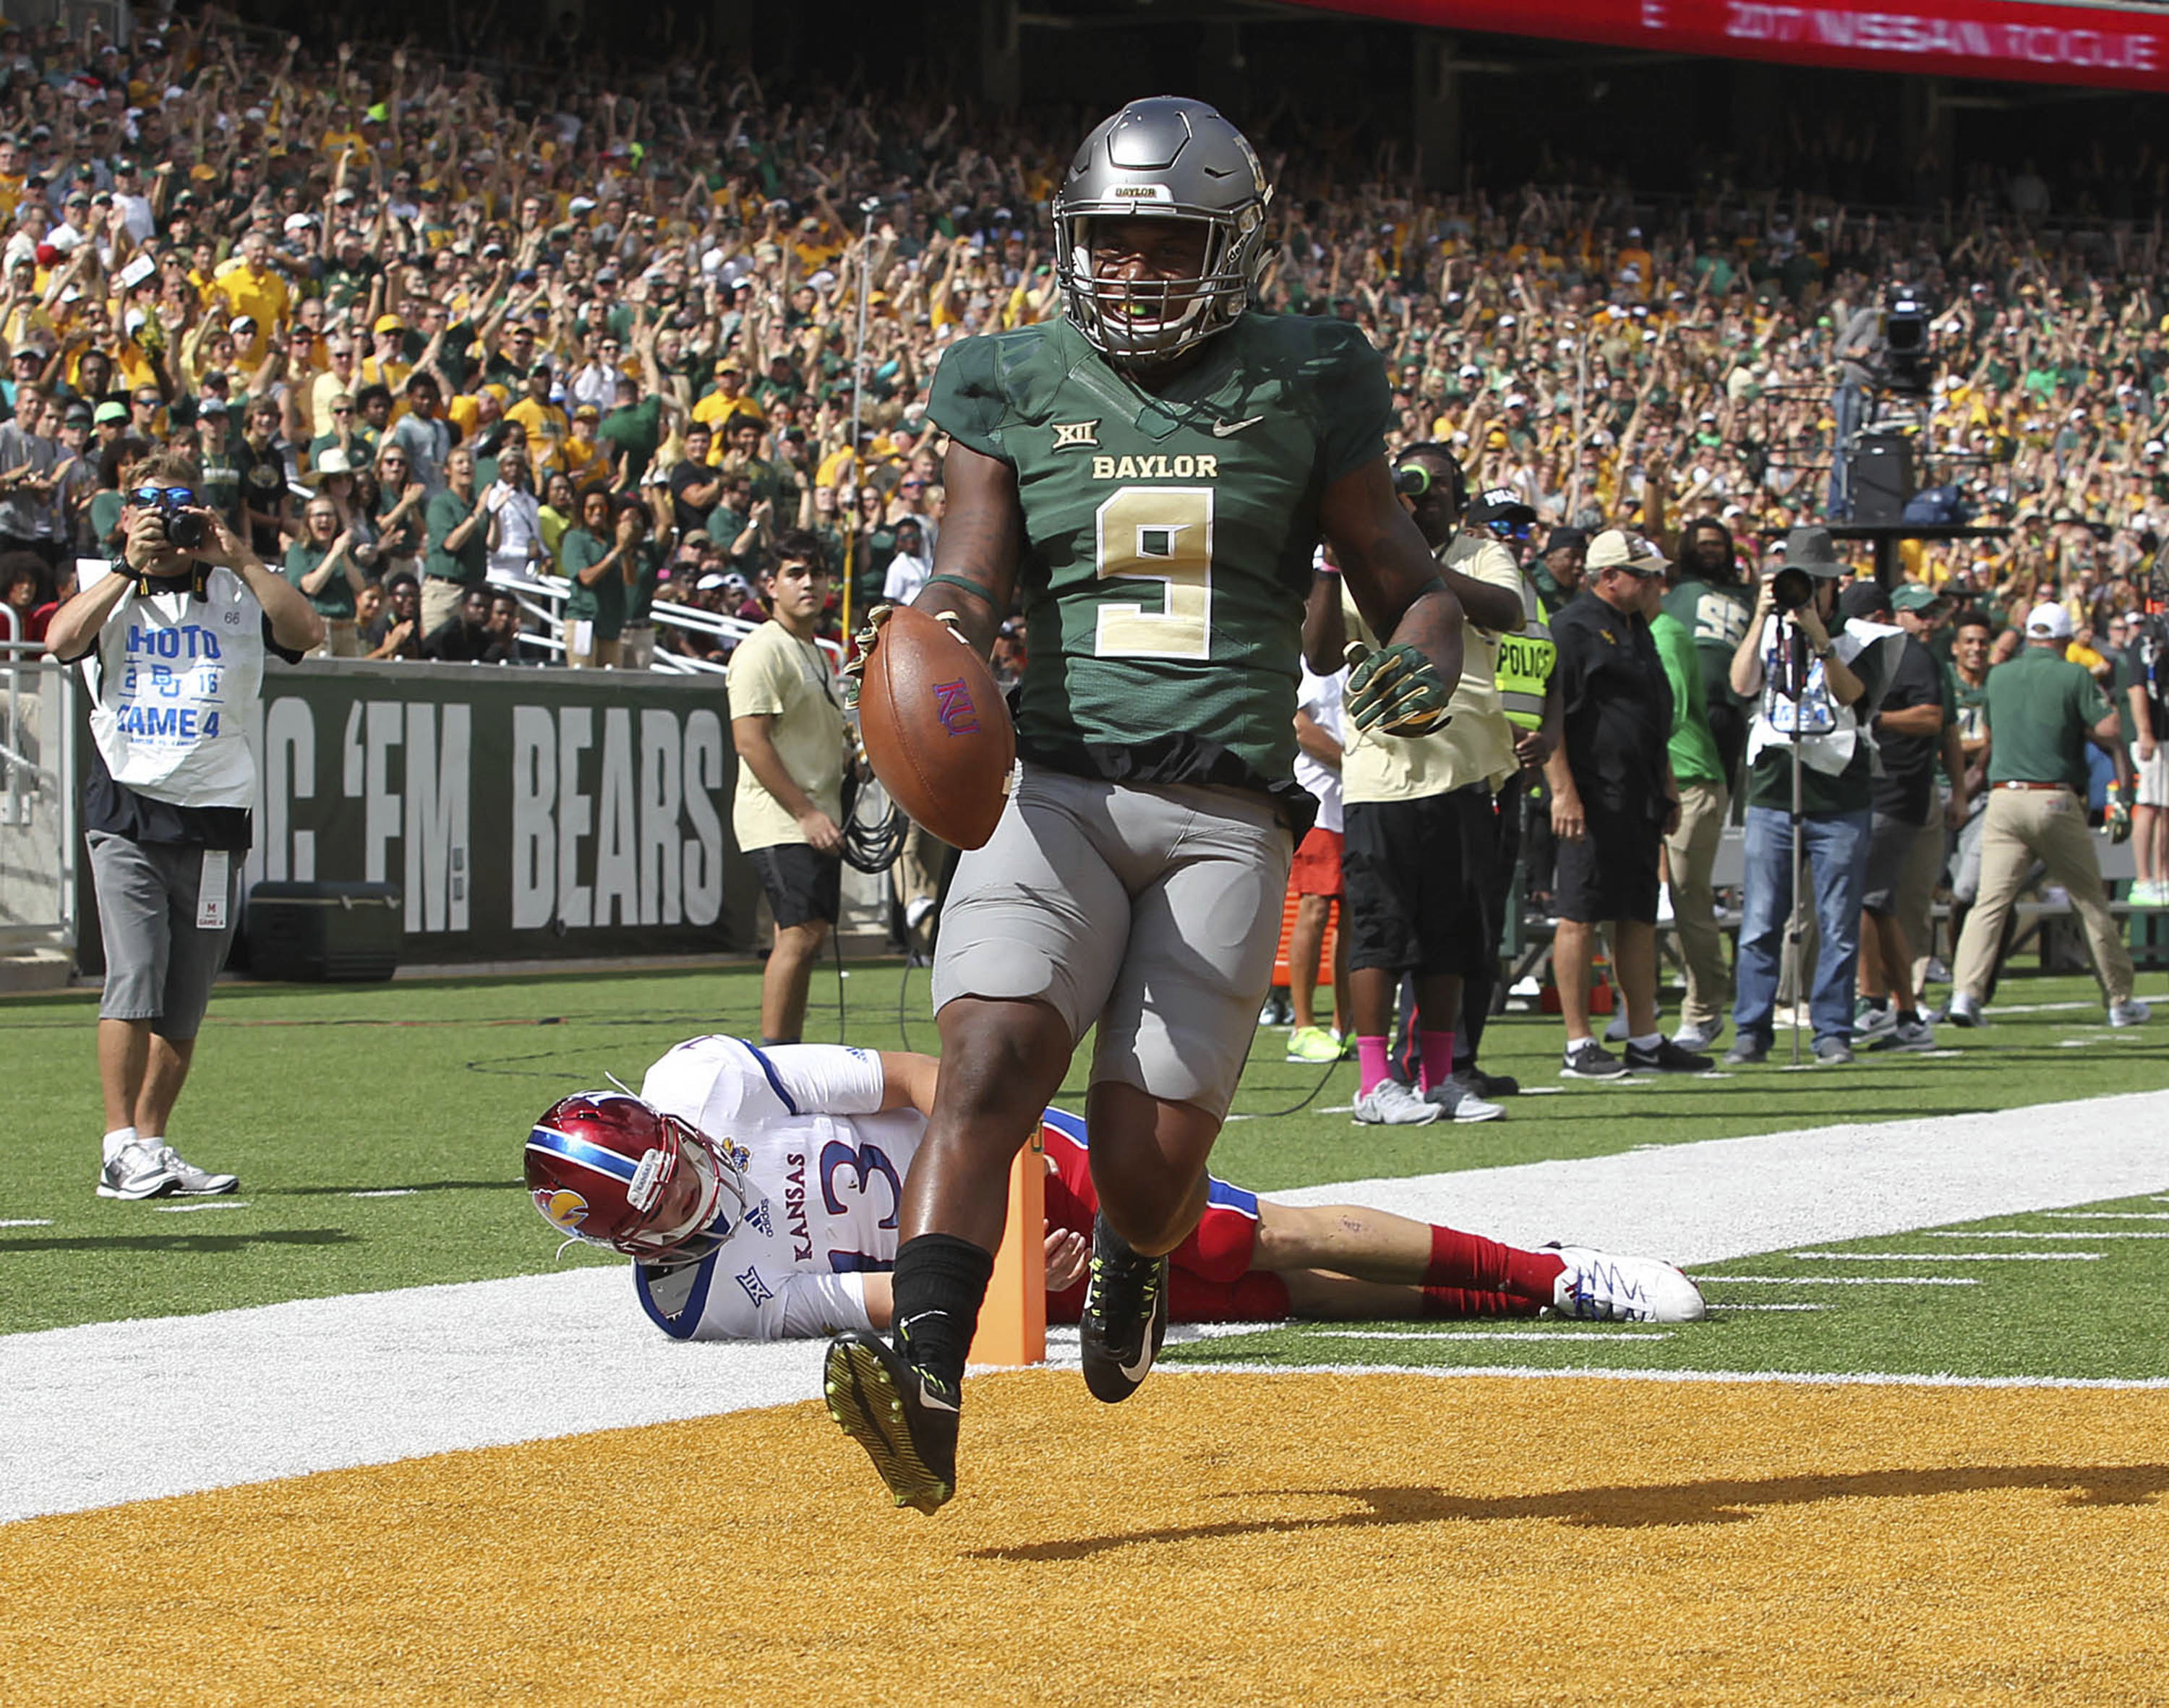 Baylor cornerback Ryan Reid scores on an interception over Kansas quarterback Ryan Willis (13) in the first half of an NCAA college football game, Saturday, Oct. 15, 2016, in Waco, Texas. Baylor won 49-7. (Jerry Larson/Waco Tribune Herald via AP)